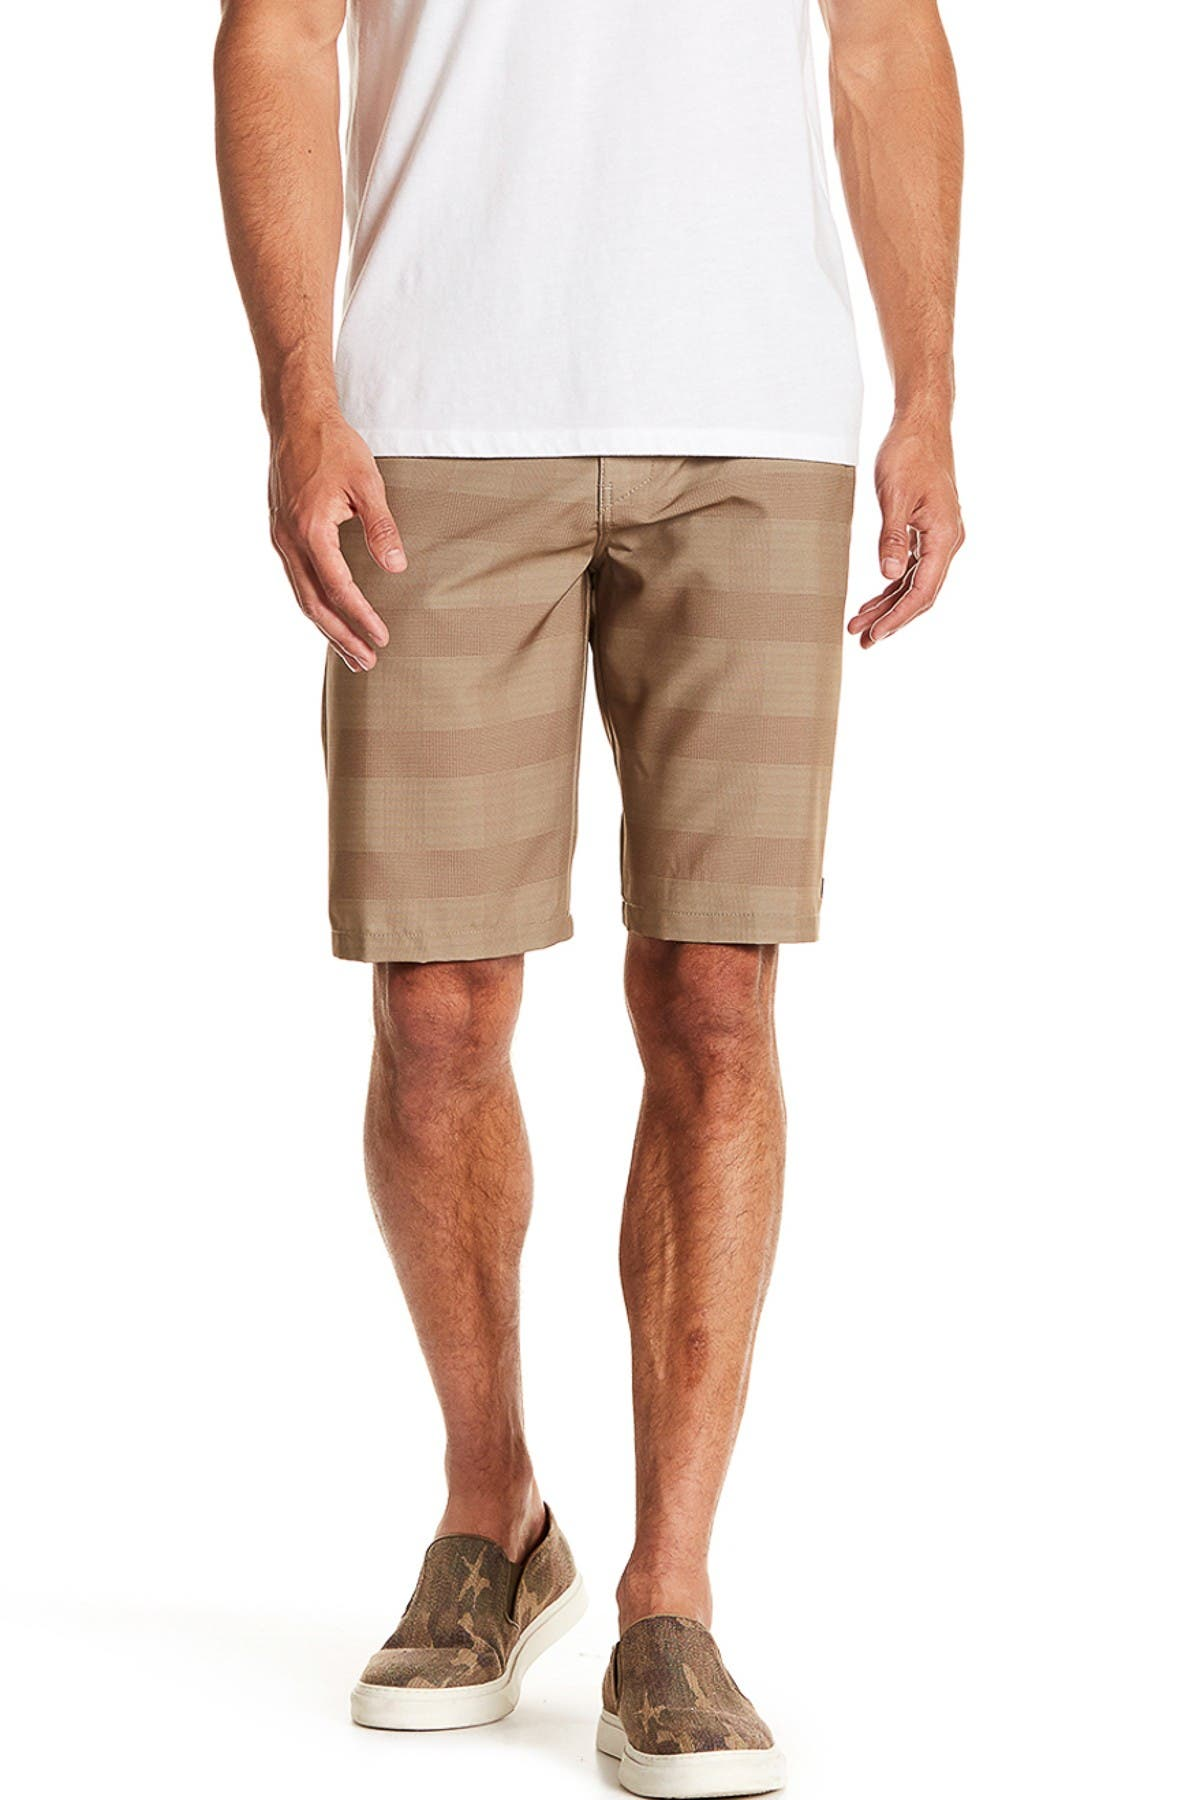 Image of Rip Curl Boardwalk Shorts